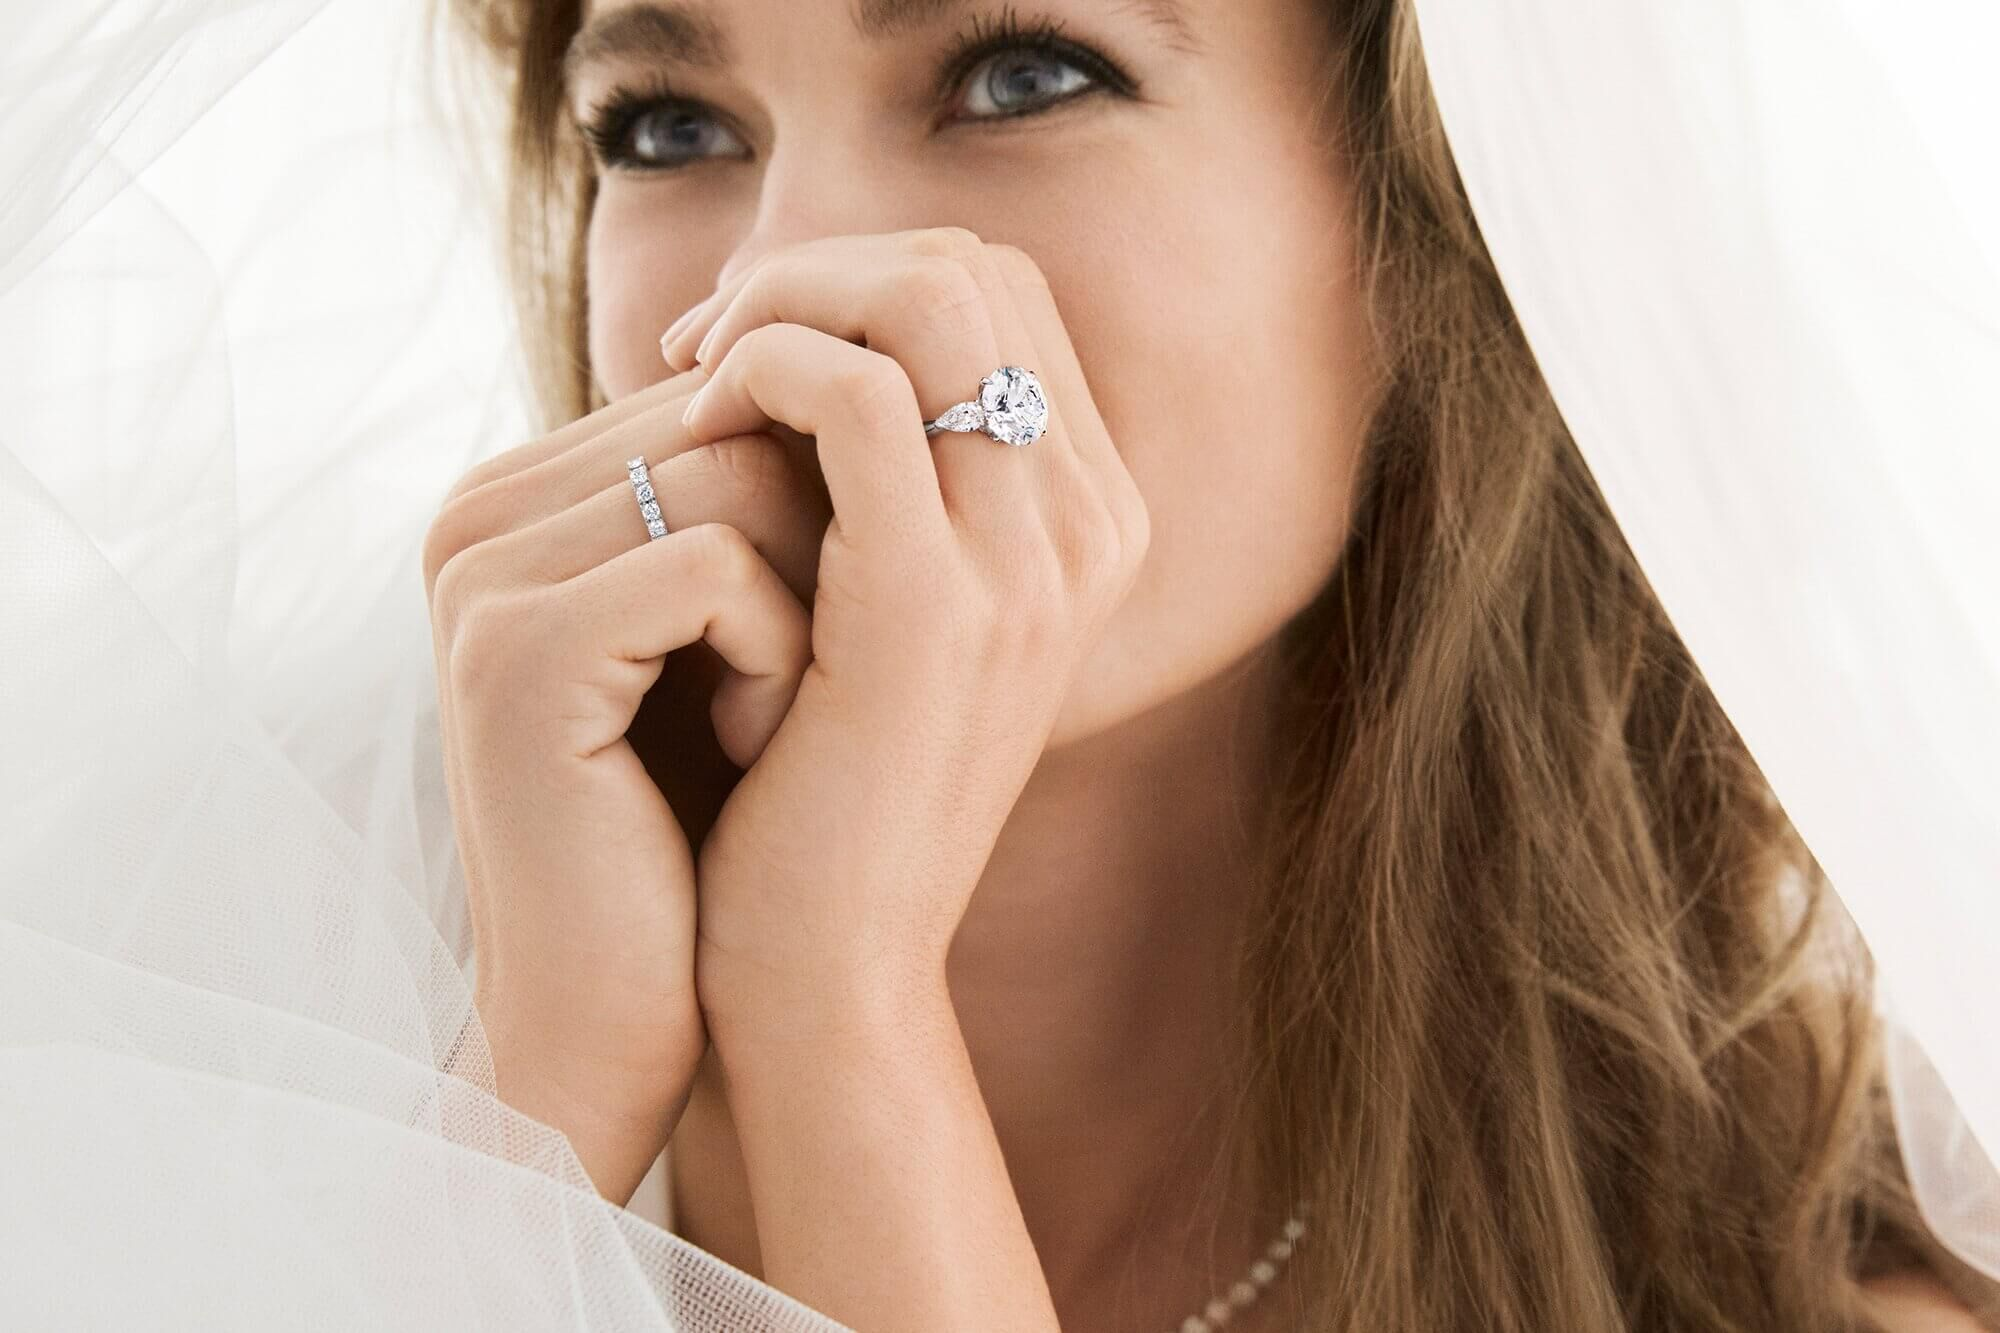 Model bride wears Promise Round Diamond Engagement Ring with pear shaped side stones and Castle Set Round Diamond Wedding Band from the Graff bridal collection.